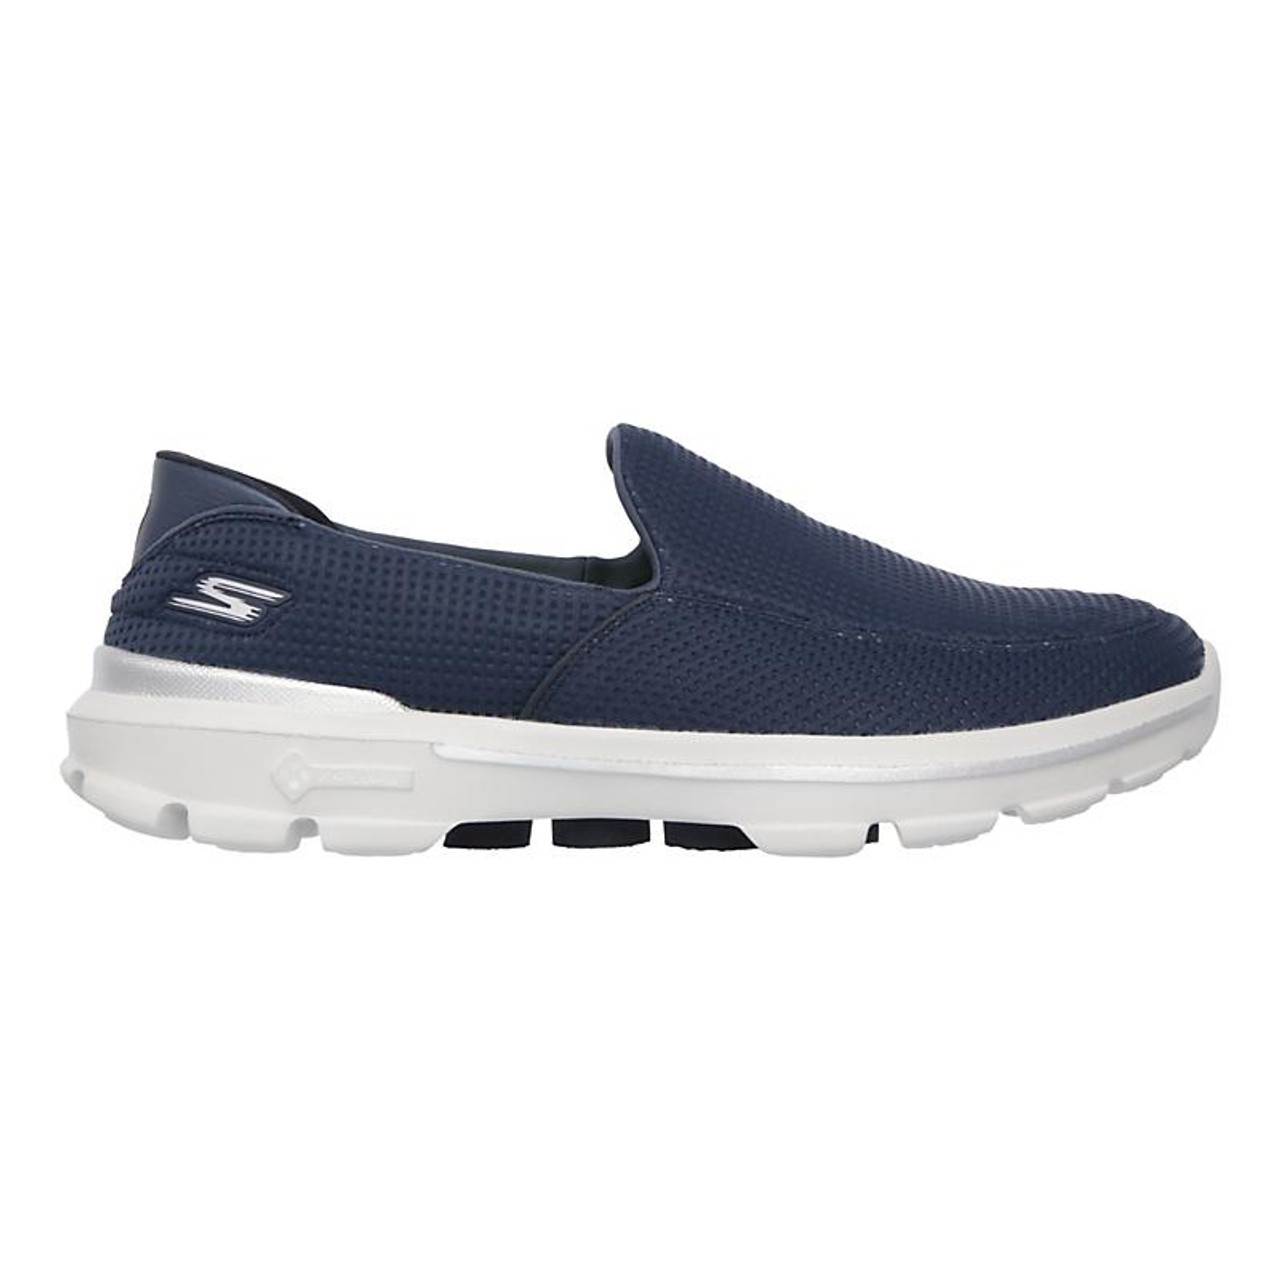 skechers outlet coupon Sale,up to 33% DiscountsDiscounts